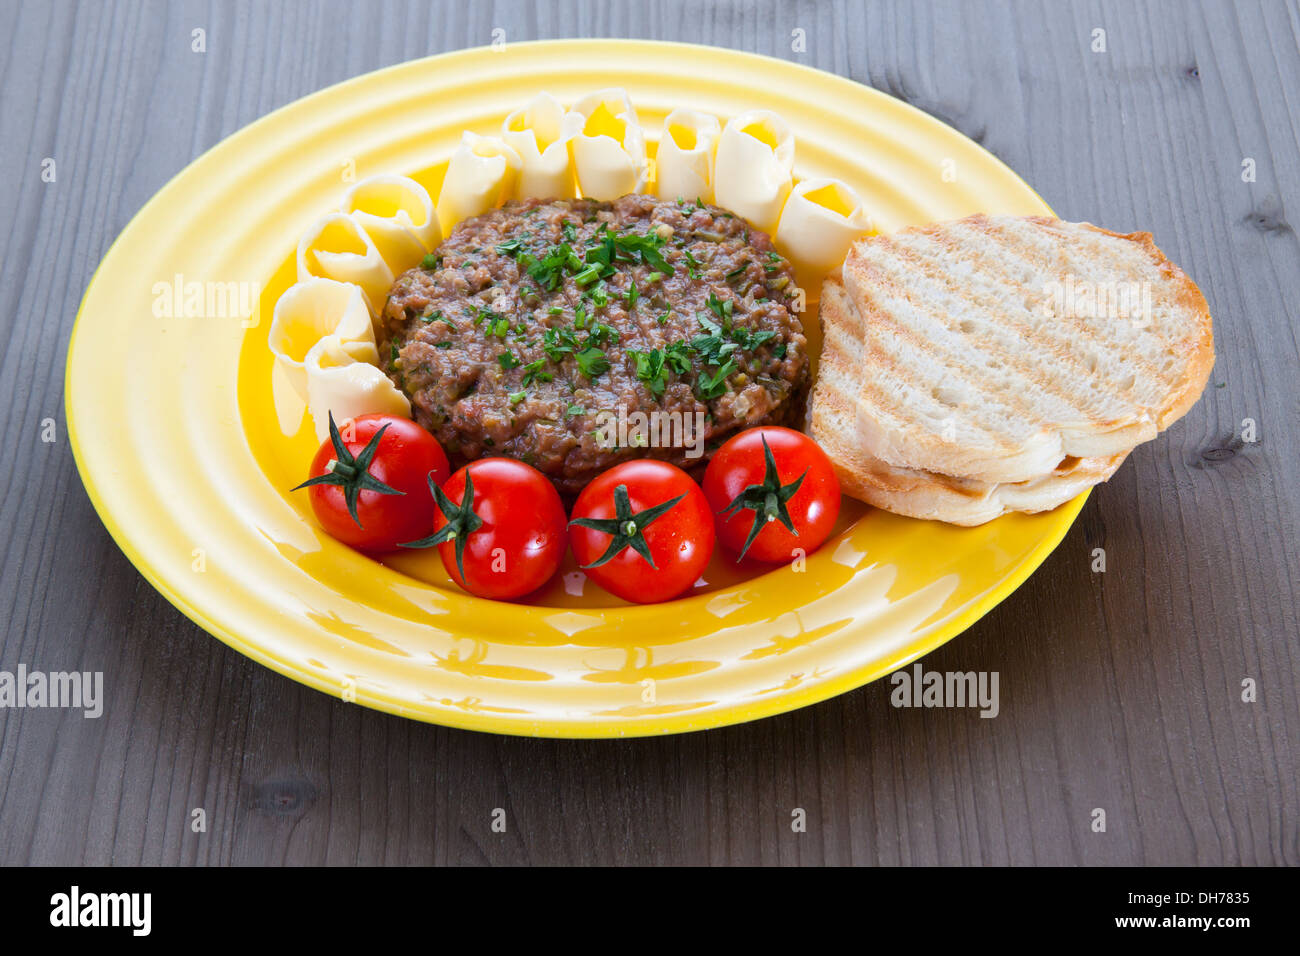 Steak tartare with toasted bread, tomatoes and butter on yellow plate Stock Photo